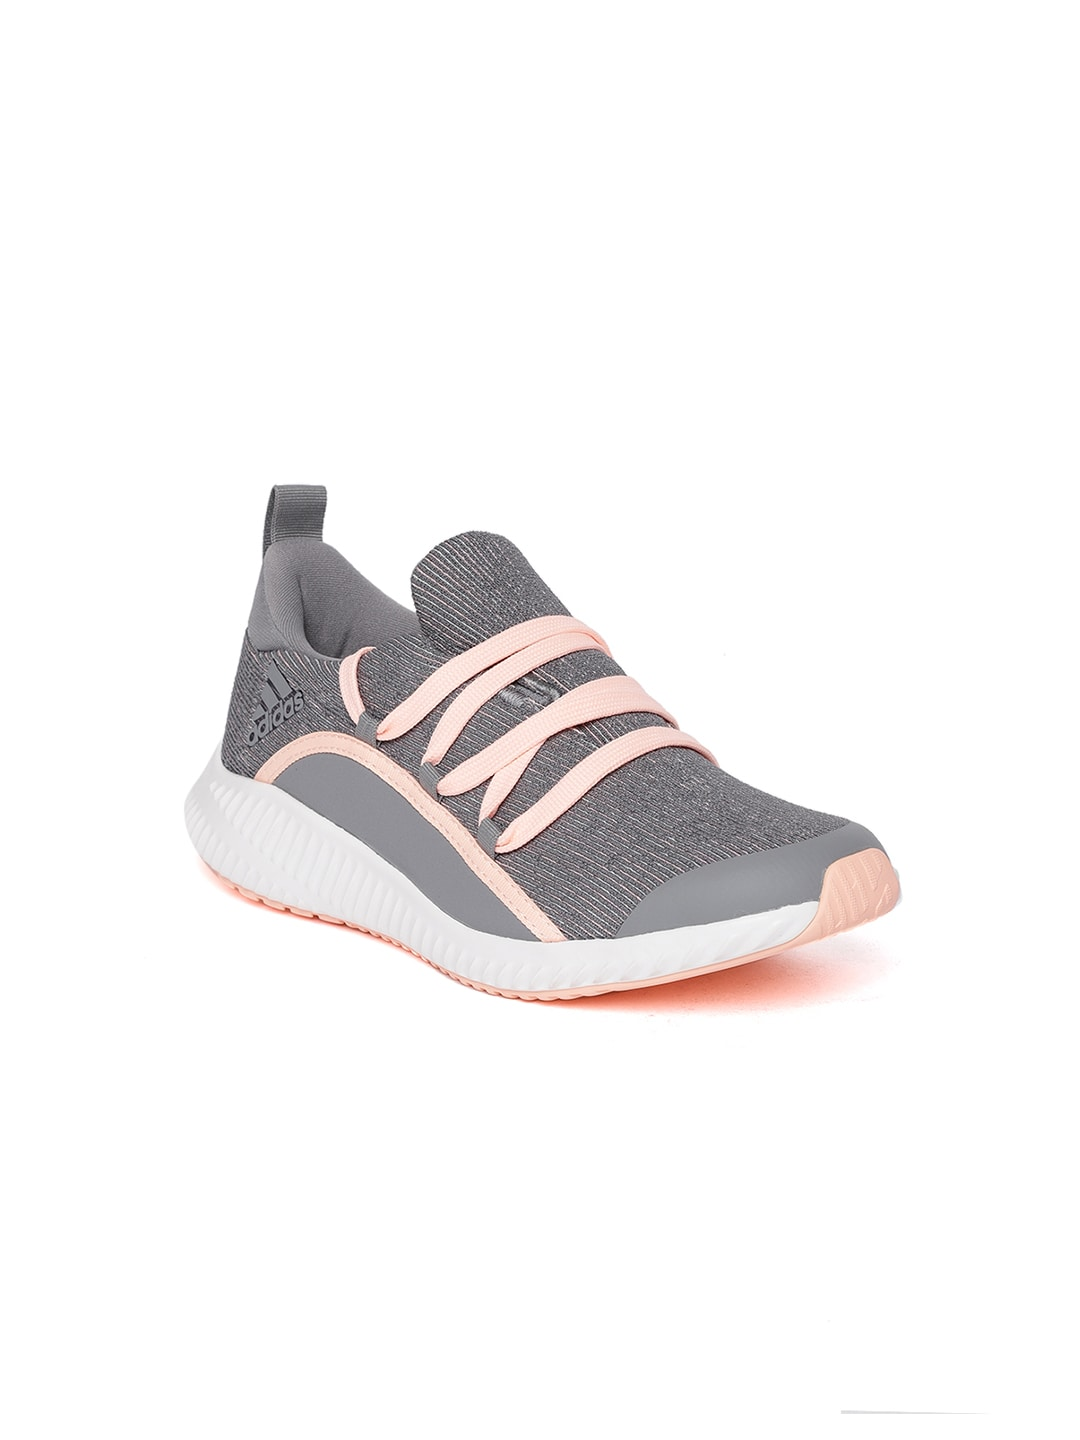 379eddf2a9d Adidas Fortarun X Grey Running Shoes for girls in India - Buy at ...